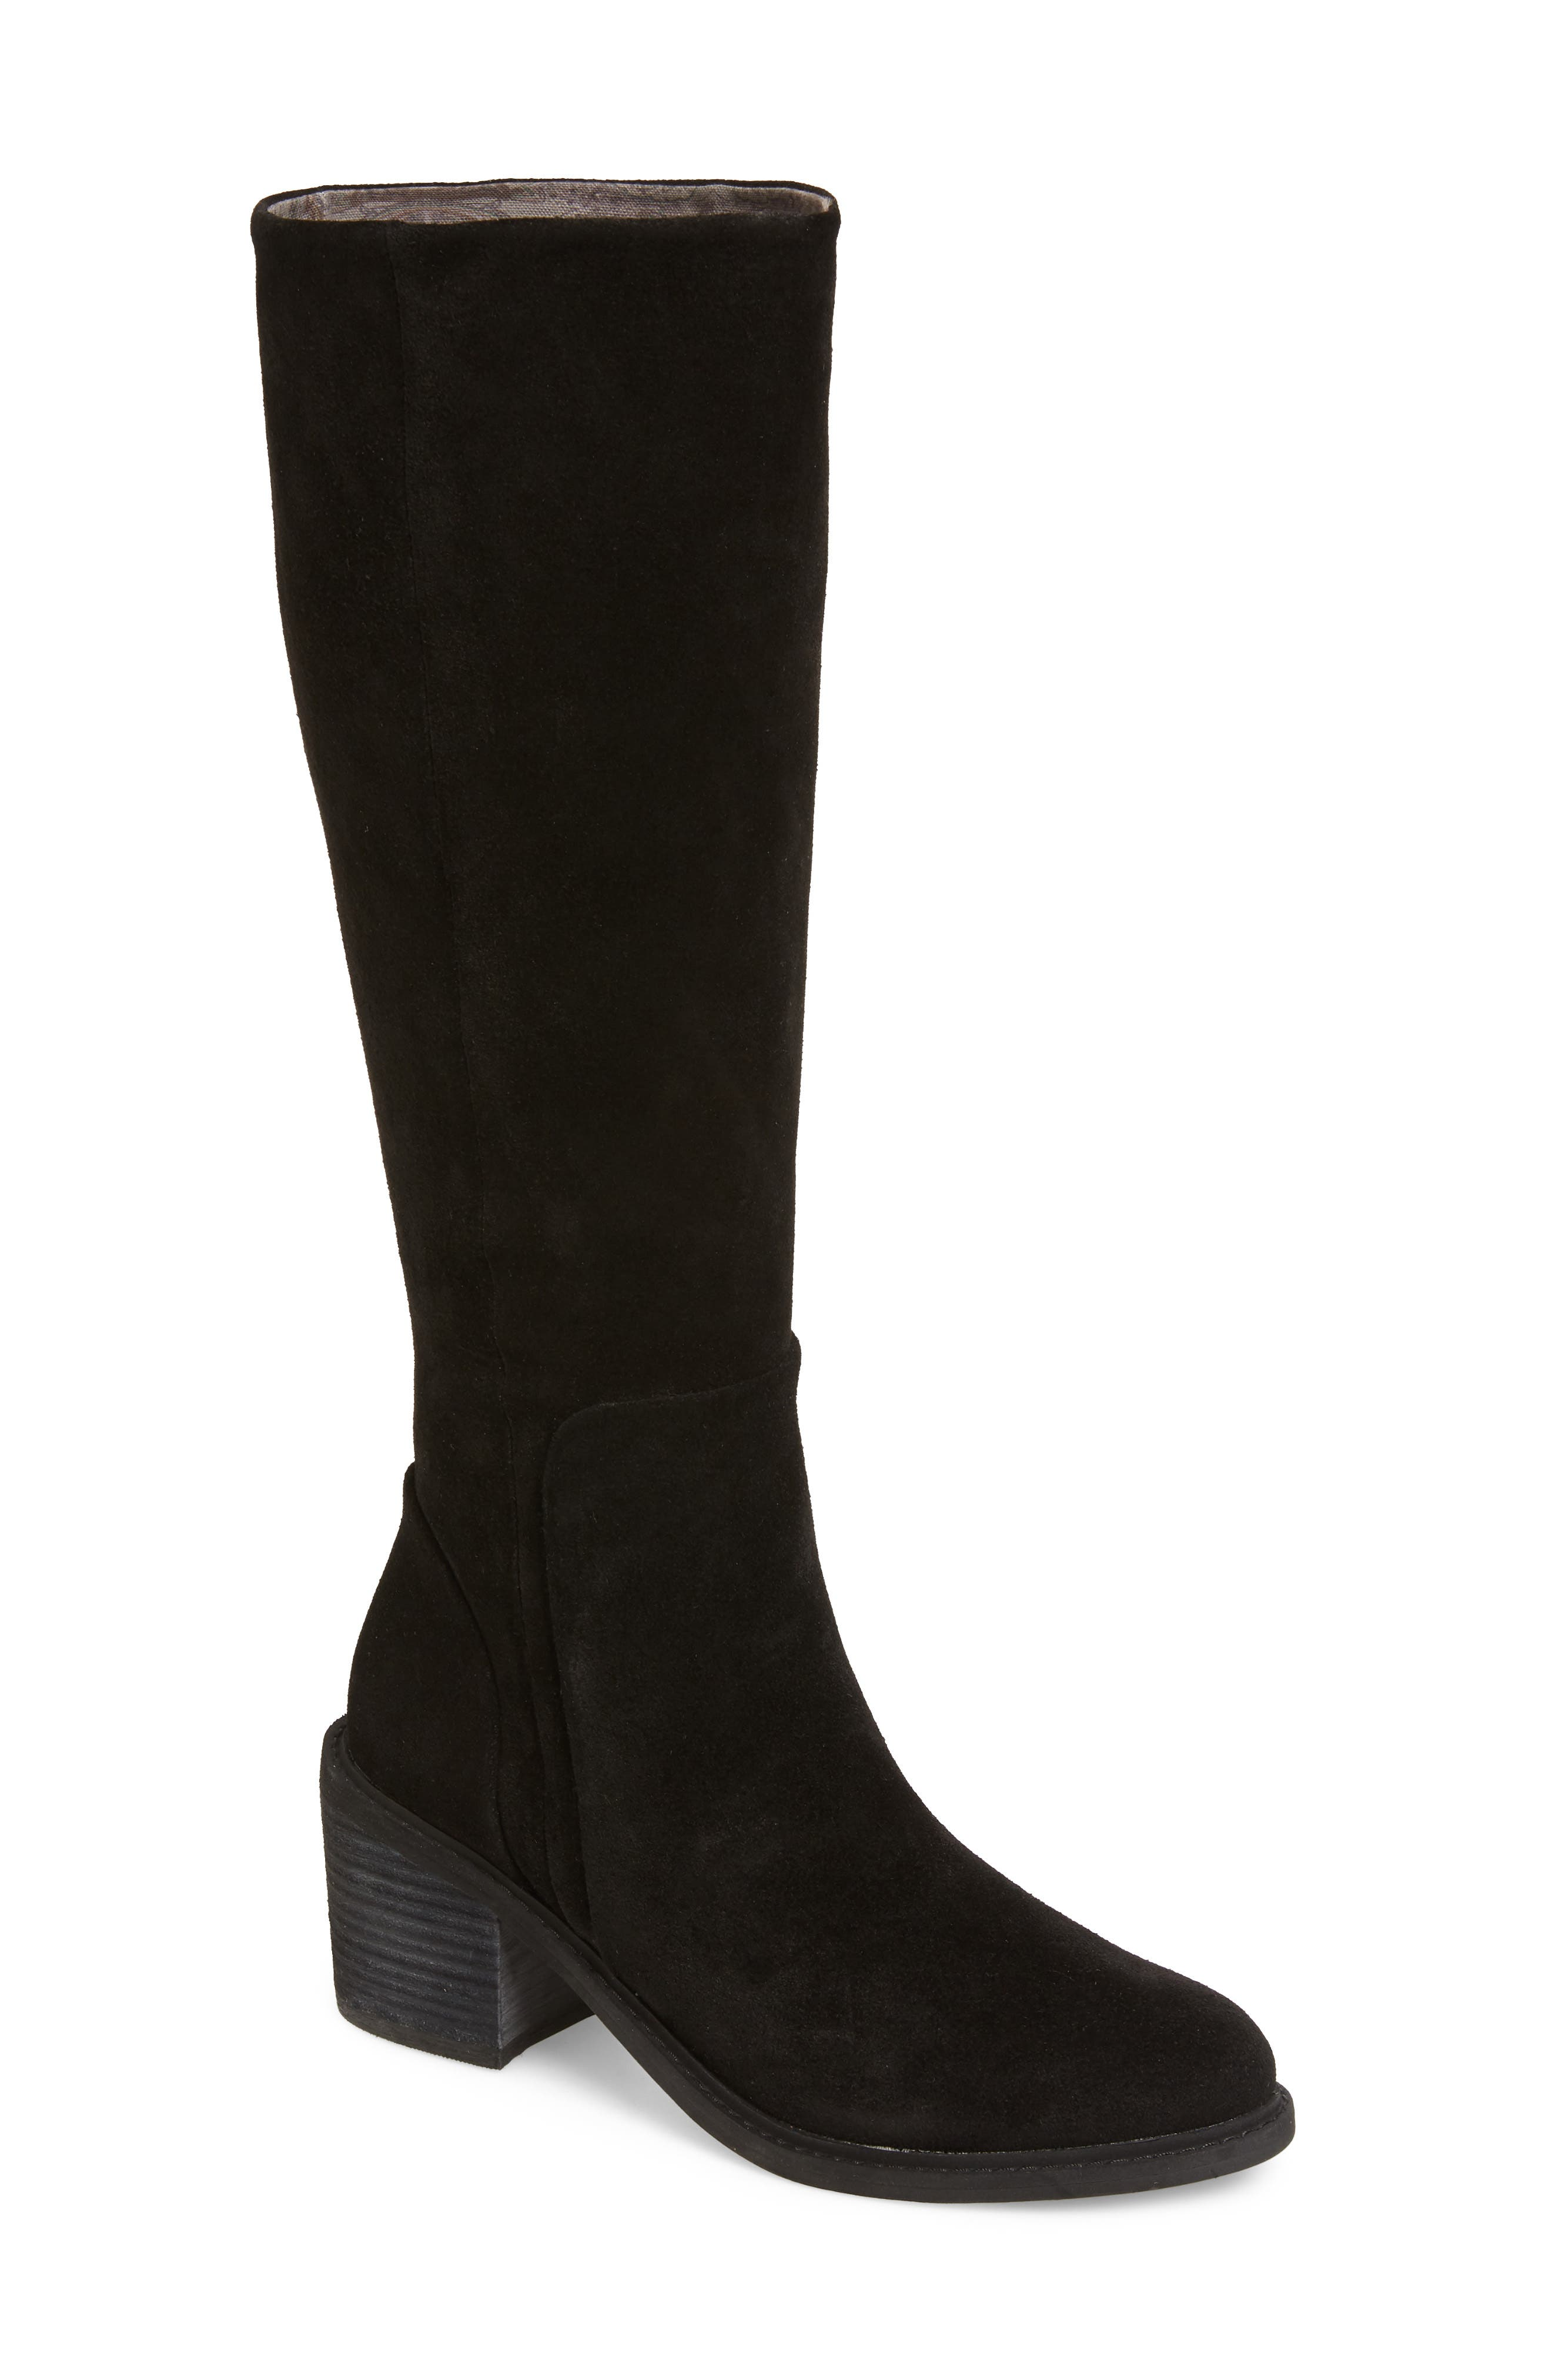 UPC 843398121694 product image for Women's Band Of Gypsies Avon Tall Boot, Size 9 M - Black | upcitemdb.com